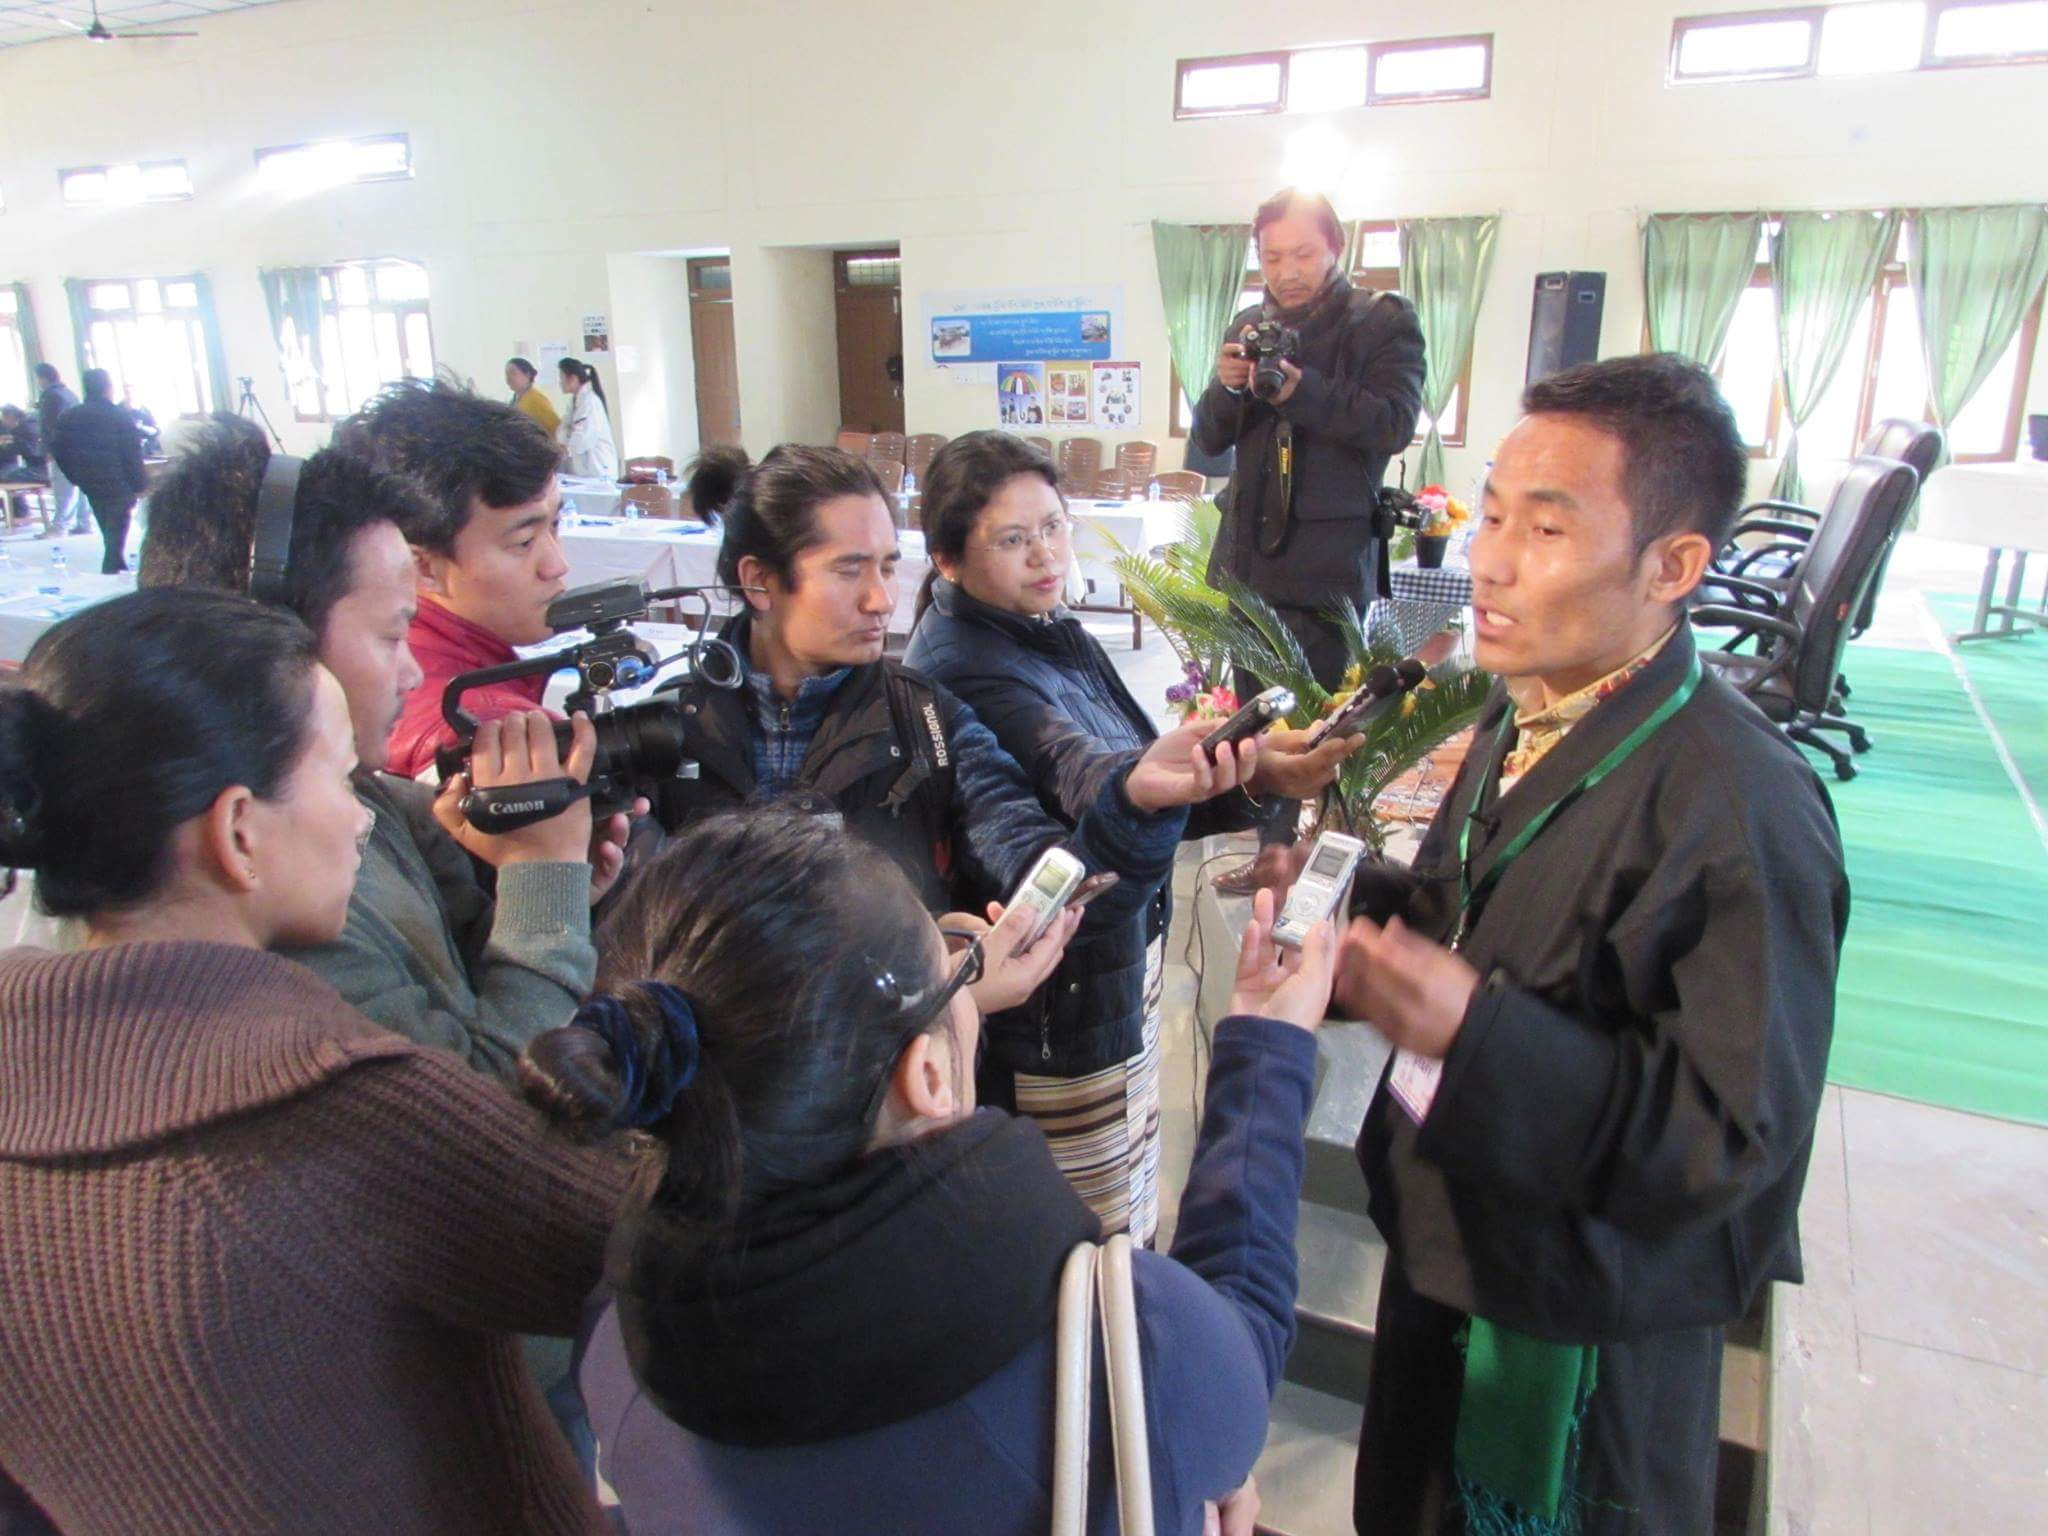 Nyima Gyaltsen is seen interacting with media personnels during the Tibetan Medical Support's Annual Workshop and Meeting.